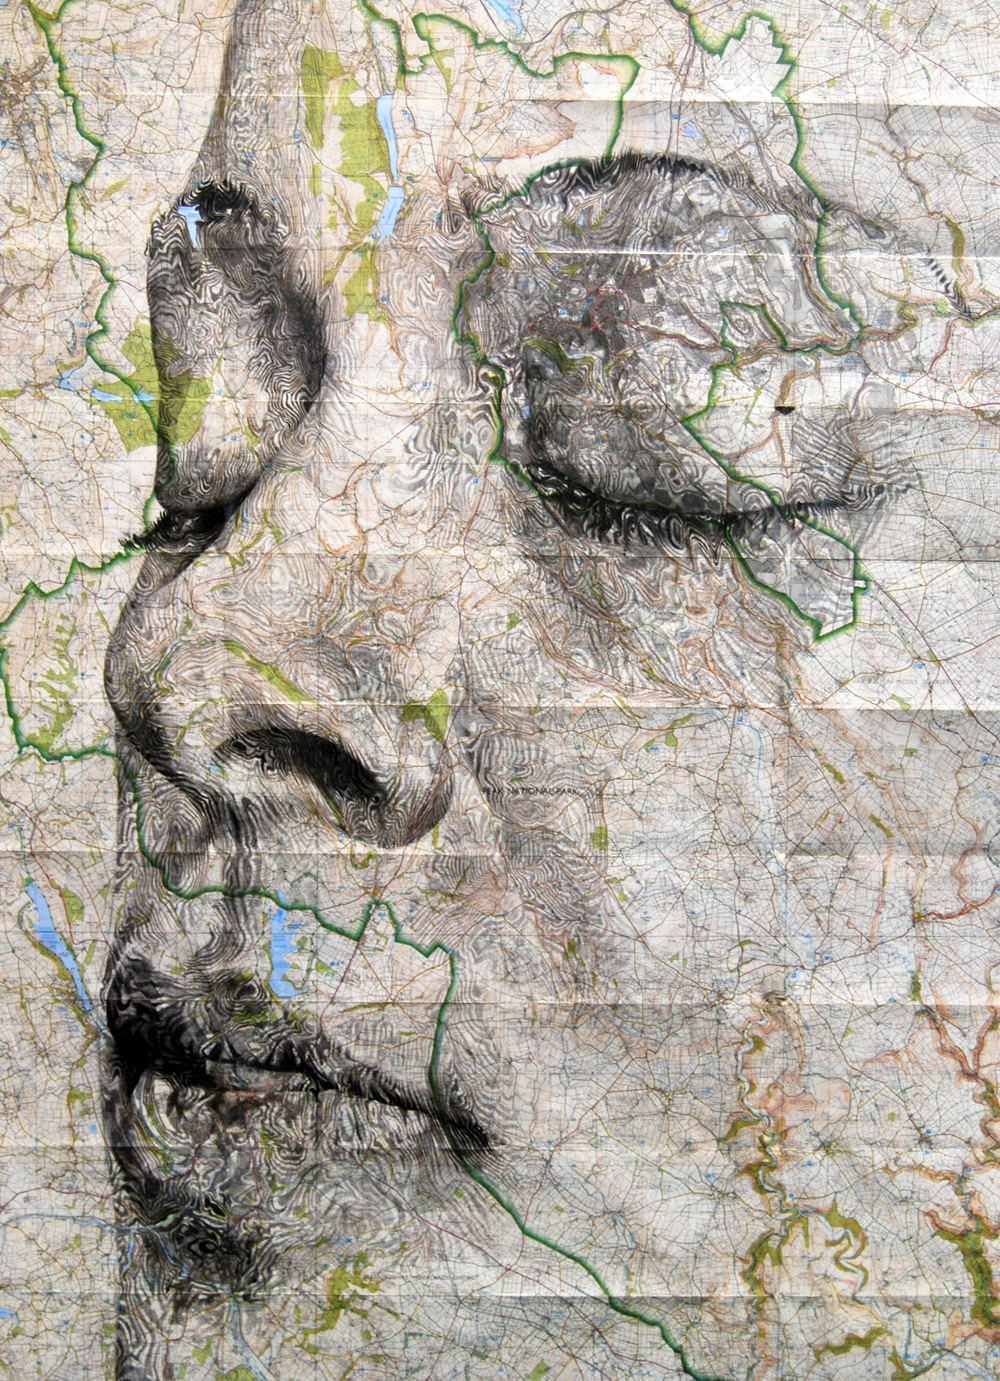 Elaborate New Portraits Drawn on Vintage Maps by Ed Fairburn | Colossal